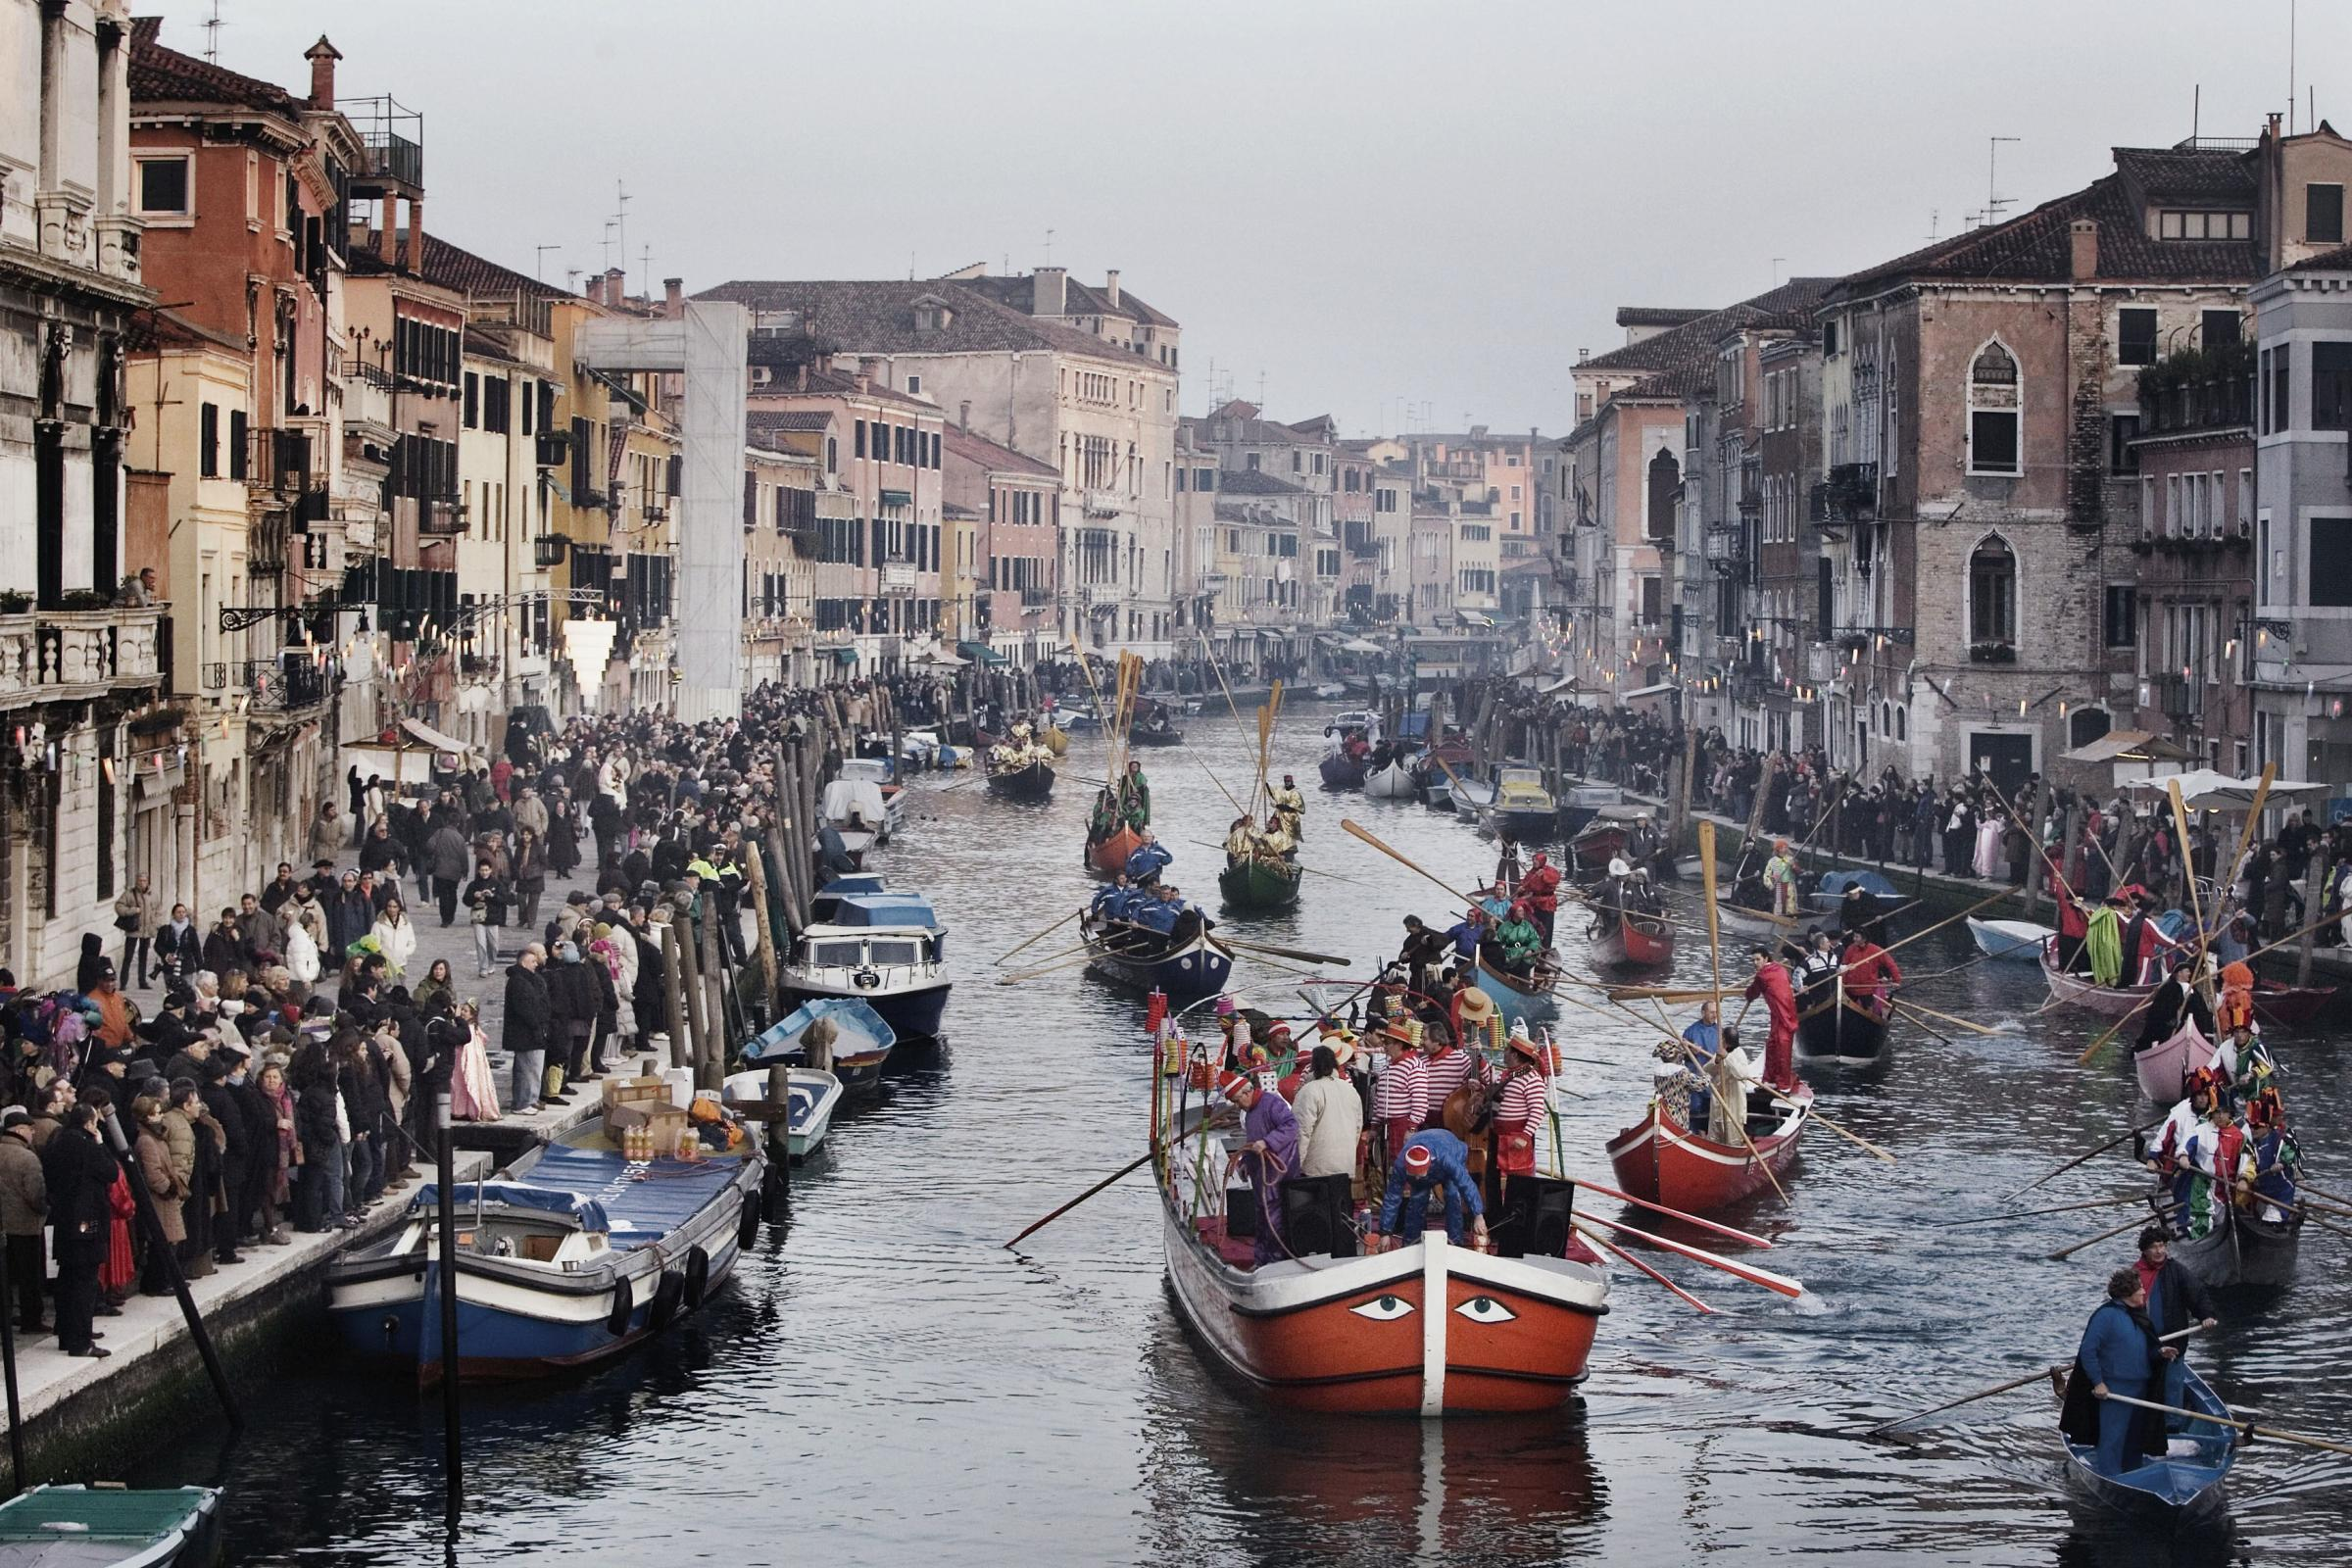 Venice has seized the initiative in tackling the downsides of tourism